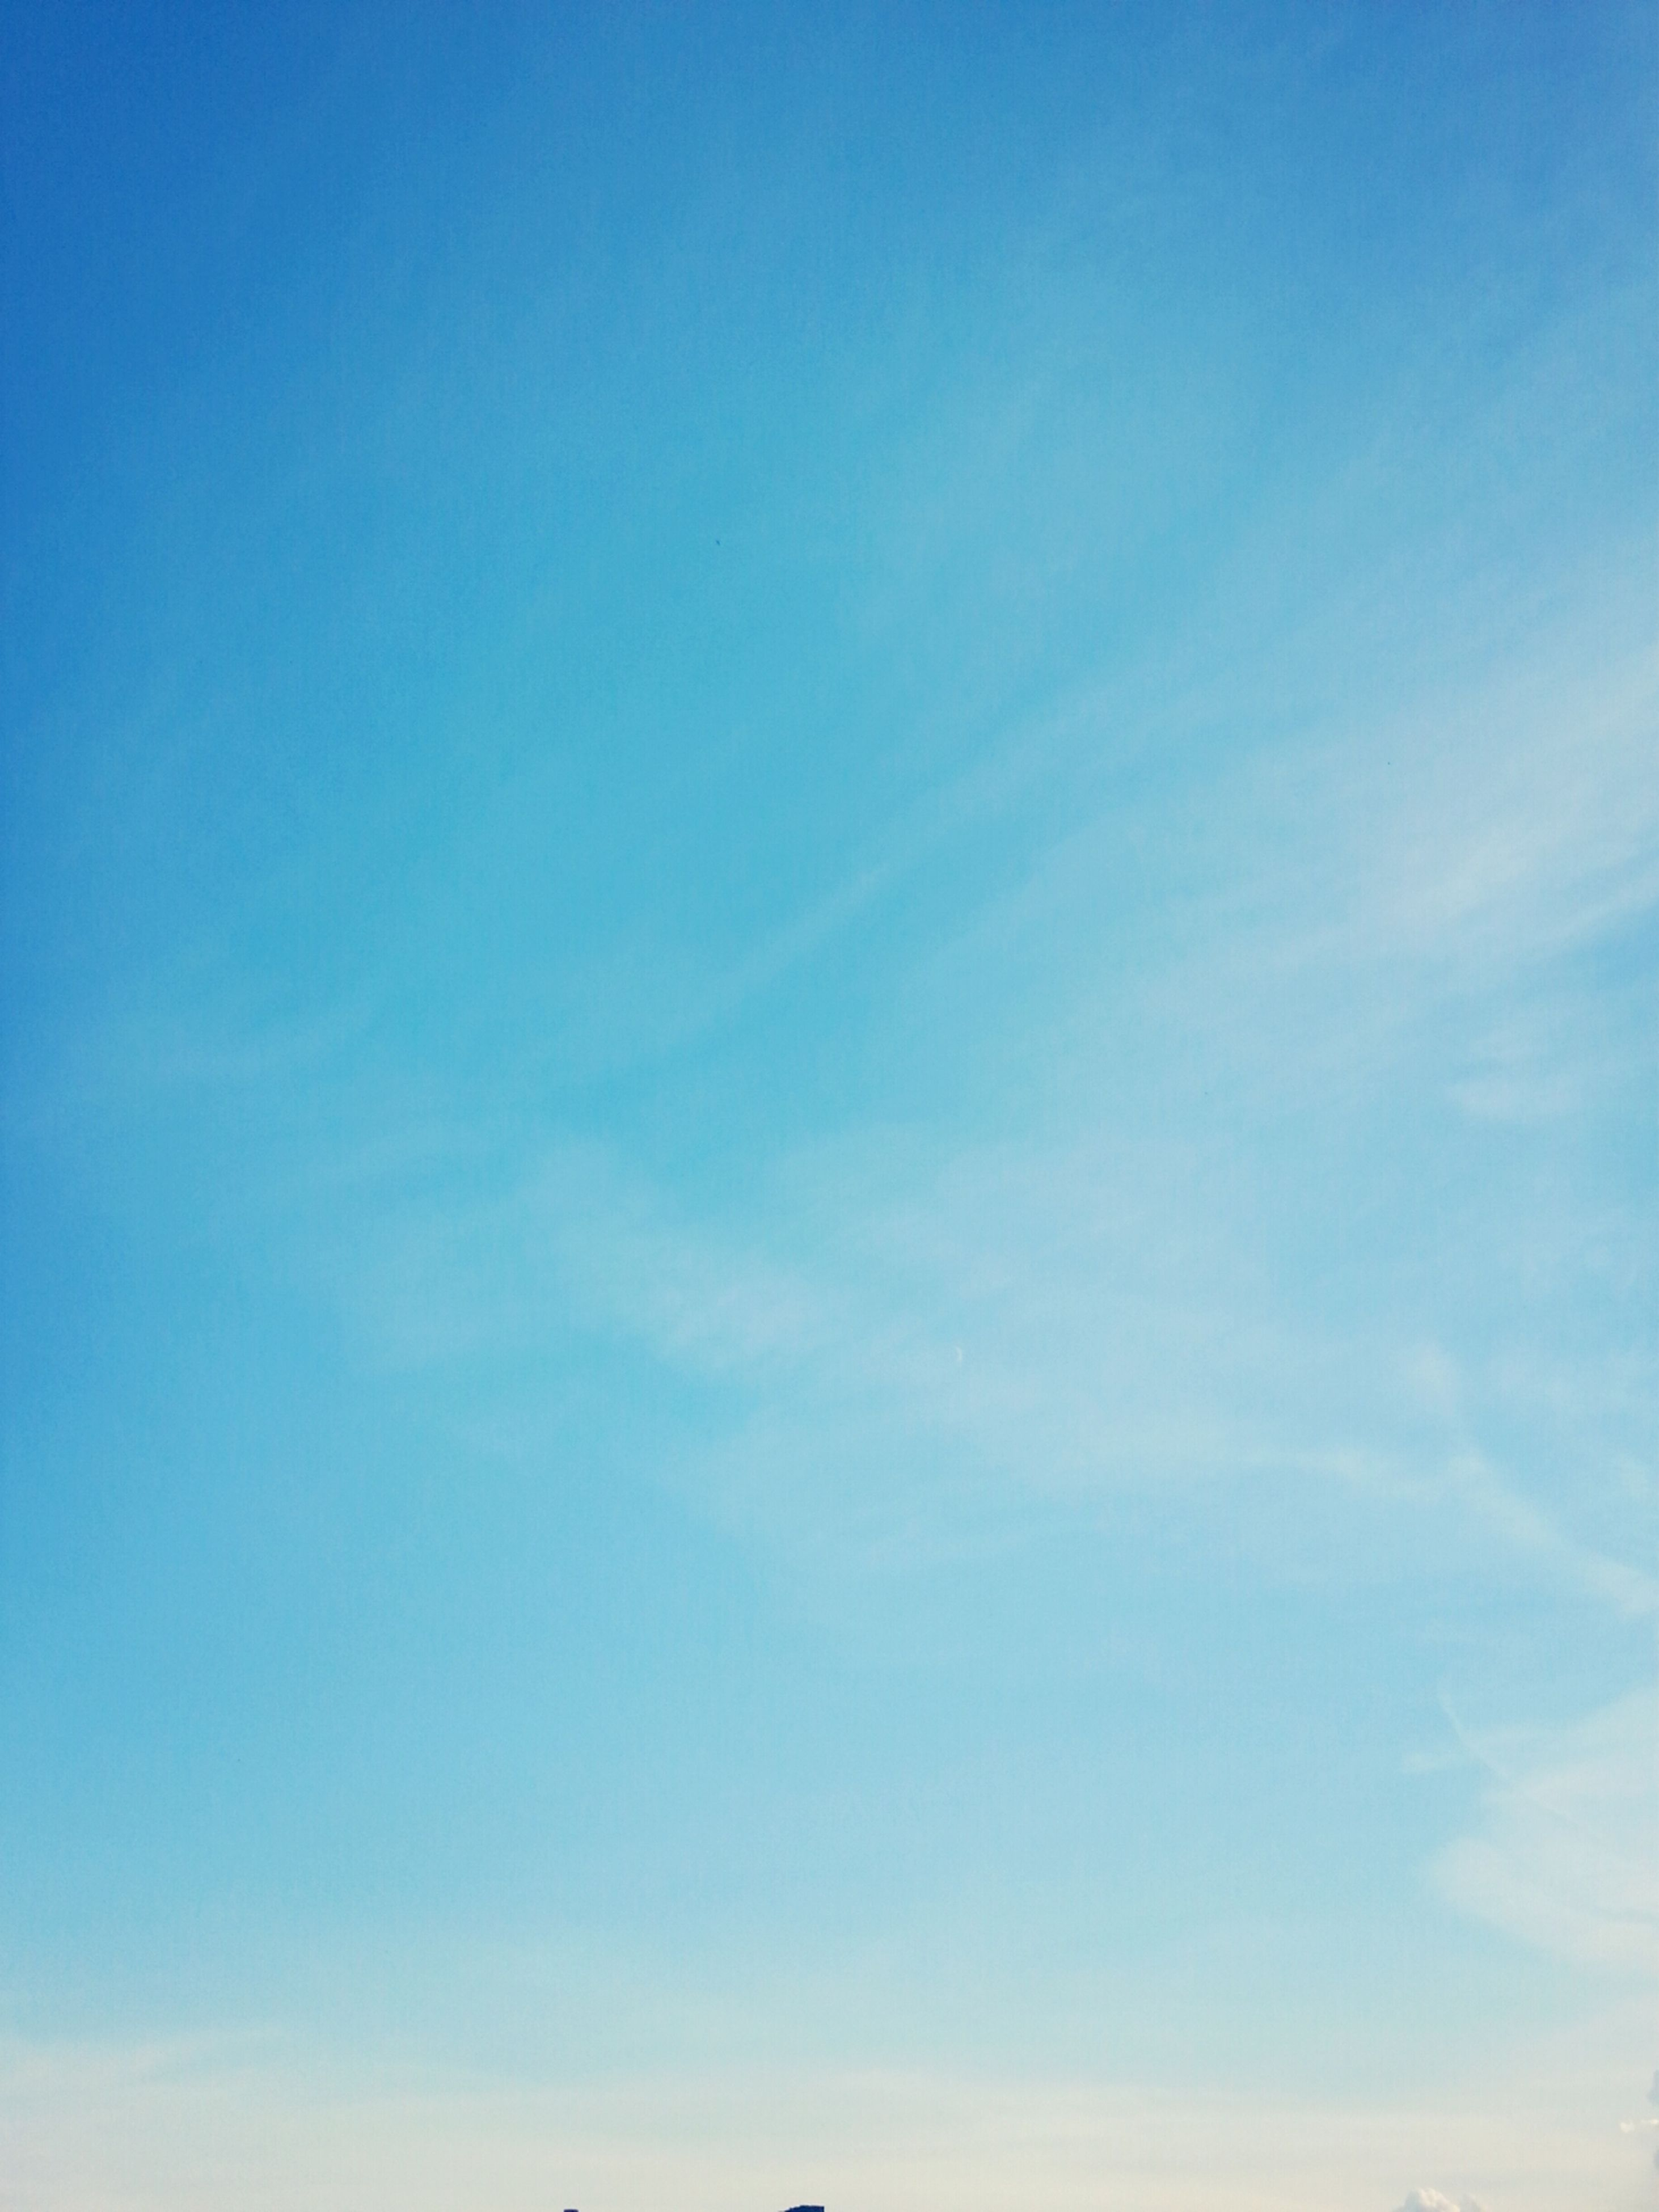 blue, low angle view, sky, beauty in nature, tranquility, copy space, scenics, tranquil scene, nature, outdoors, idyllic, clear sky, day, no people, cloud - sky, sky only, backgrounds, cloud, sunlight, white color